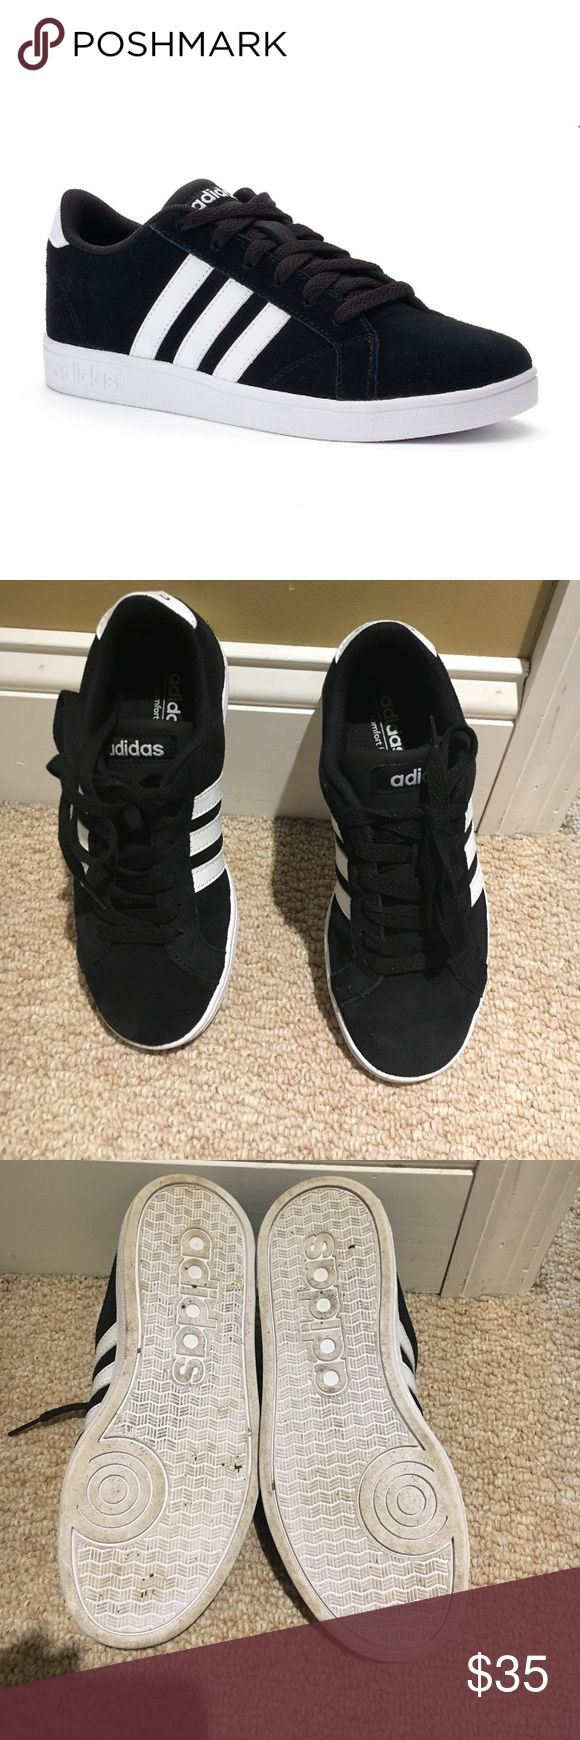 Adidas baseline black suede kids sz 1.5 Adidas Neil baseline black suede sneaker in youth size 1.5. One ones indoors in mint condition small black mark on right shoe shown in picture Adidas Shoes Sneakers